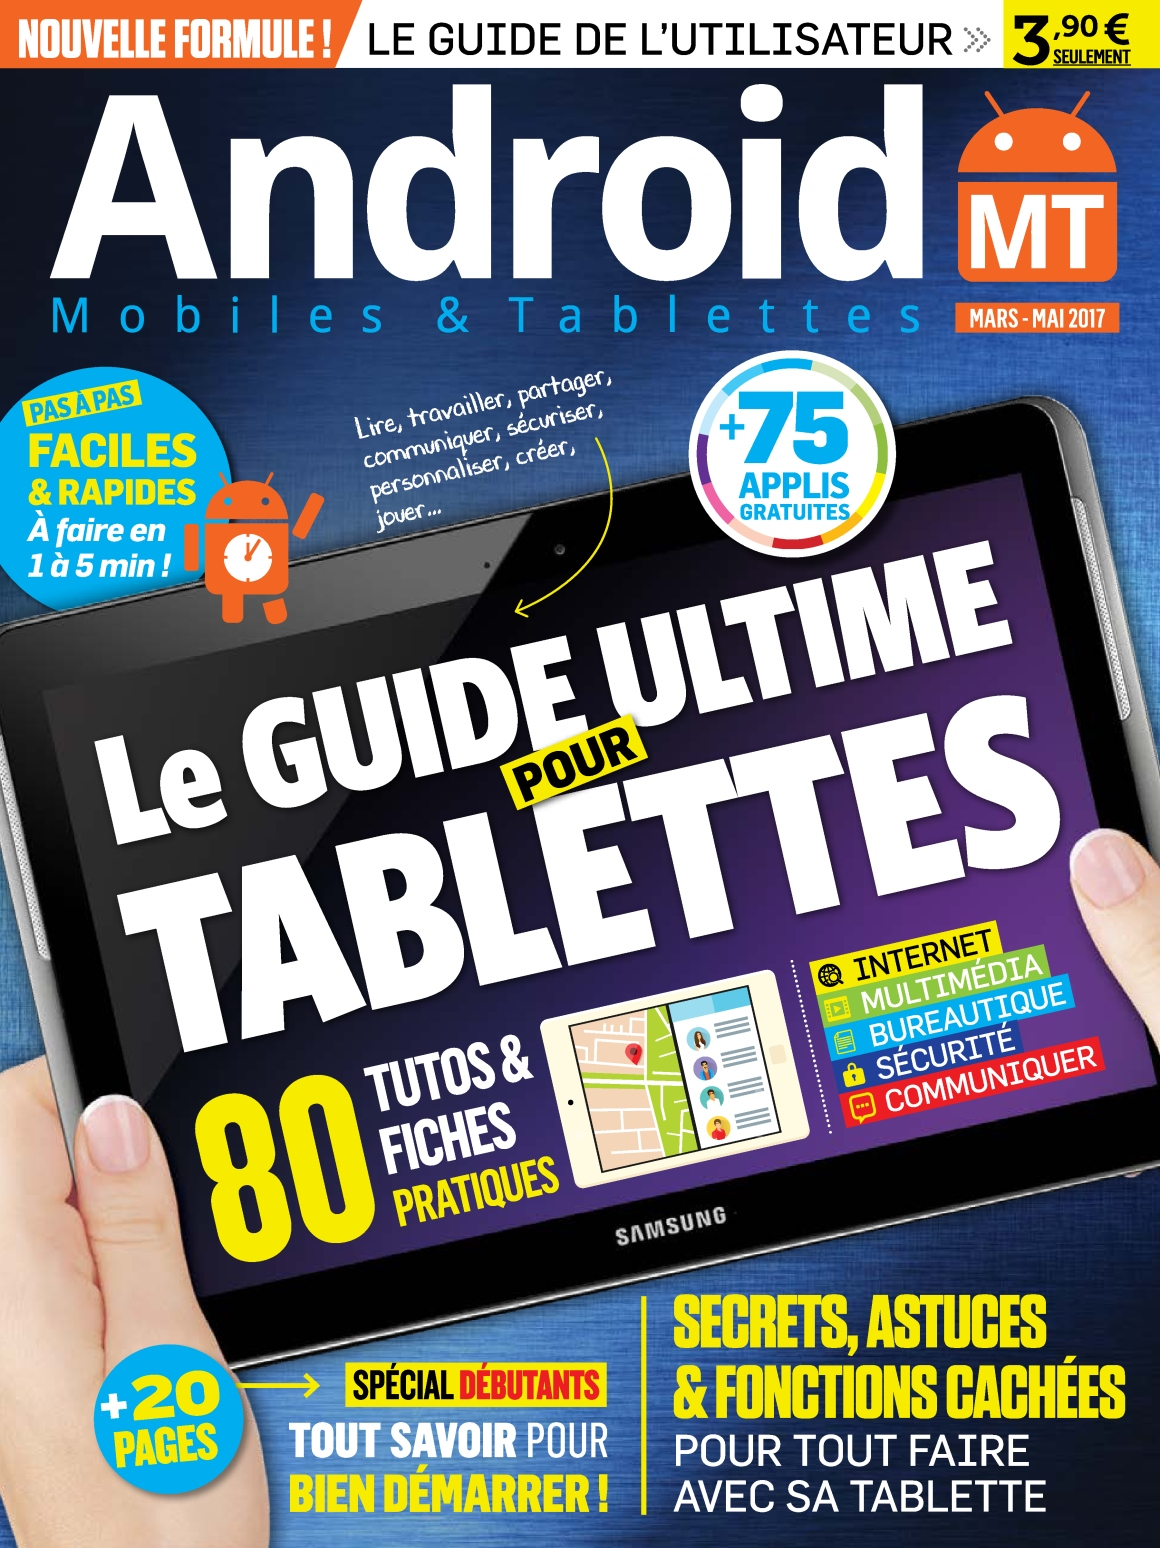 Android Mobiles & Tablettes N°36 - Mars/Mai 2017